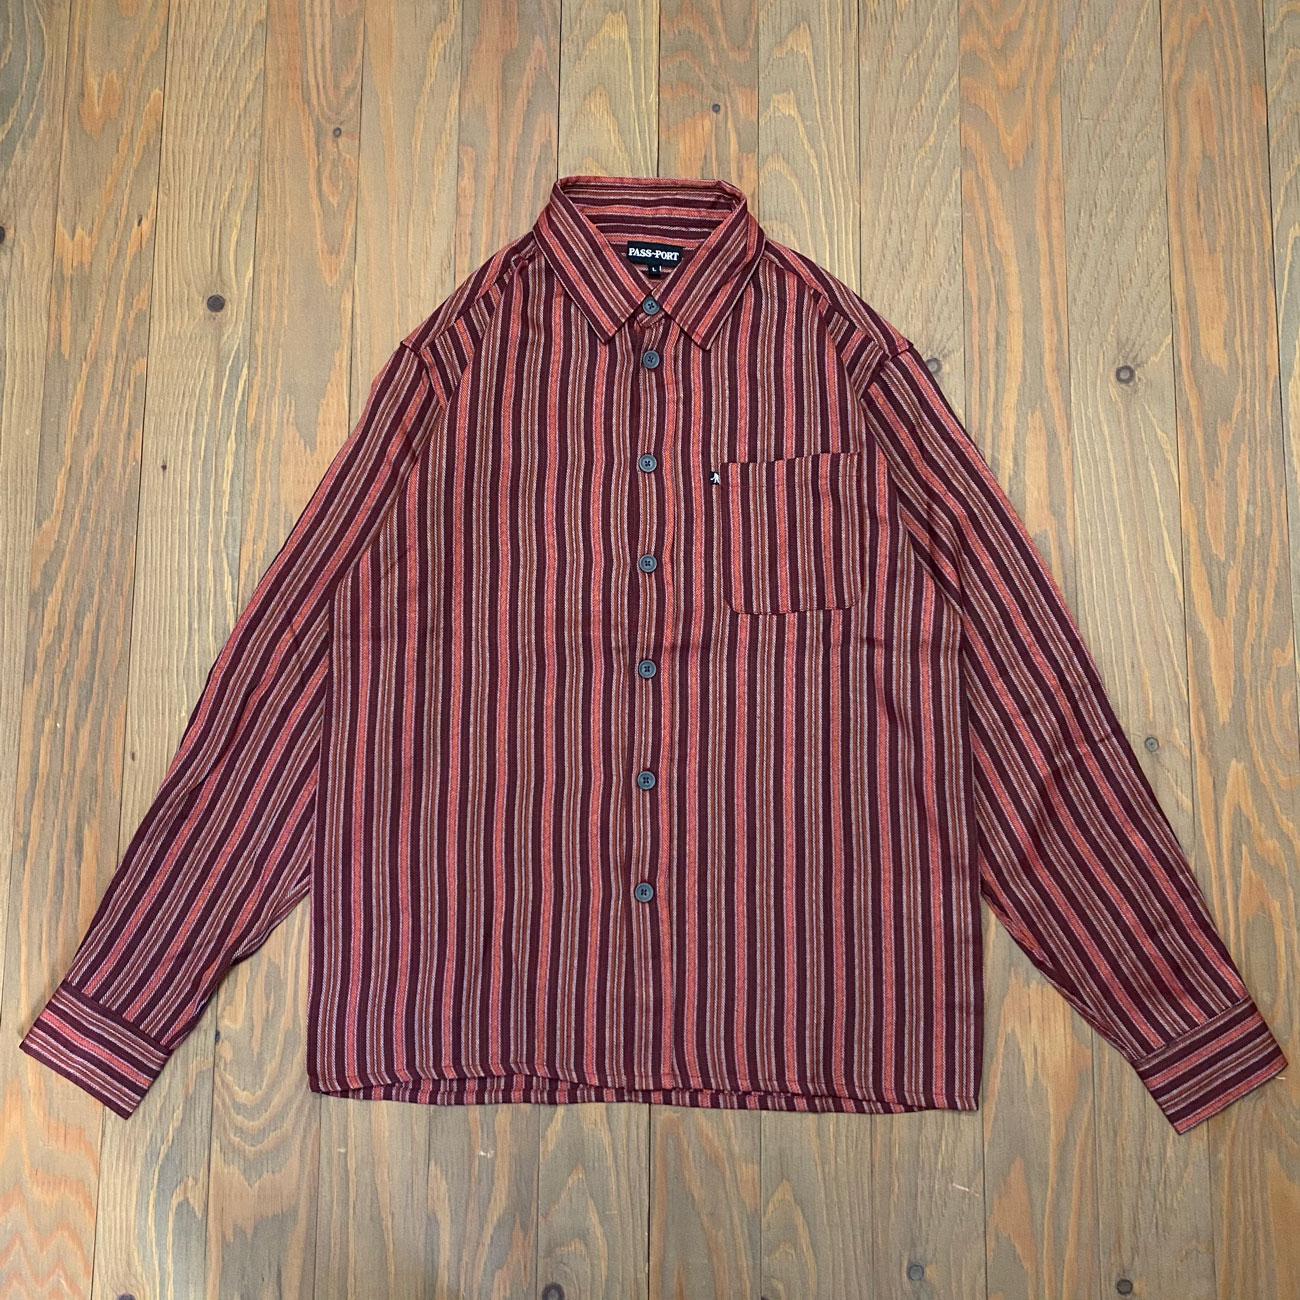 PASS~PORT WORKERS STRIPES L/S SHIRT BURGUNDY